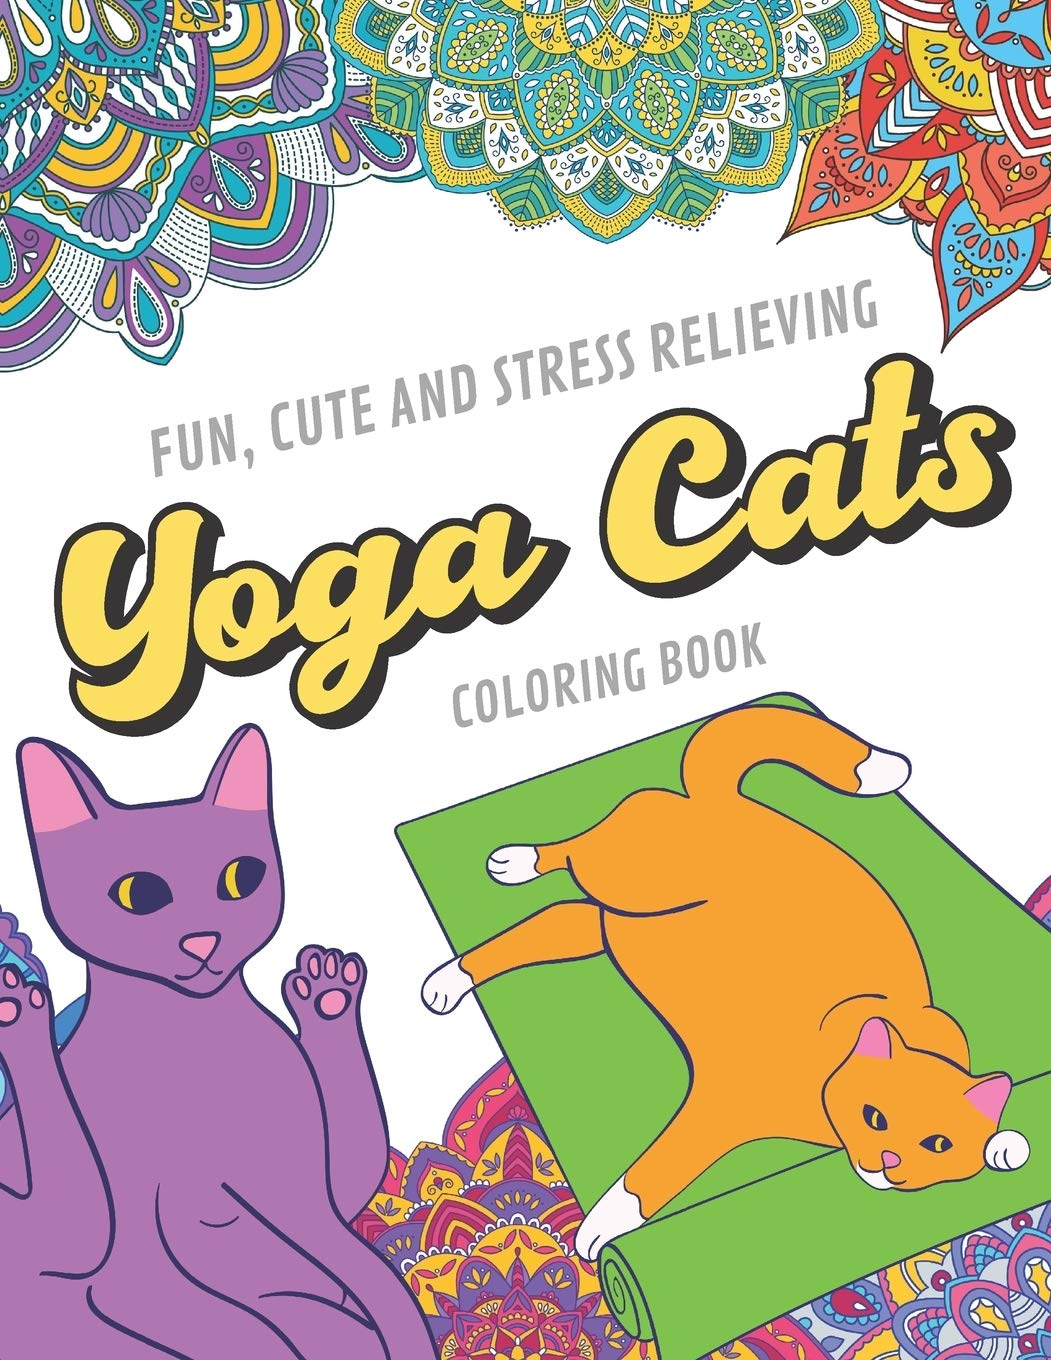 Amazon Com Fun Cute And Stress Relieving Yoga Cats Coloring Book